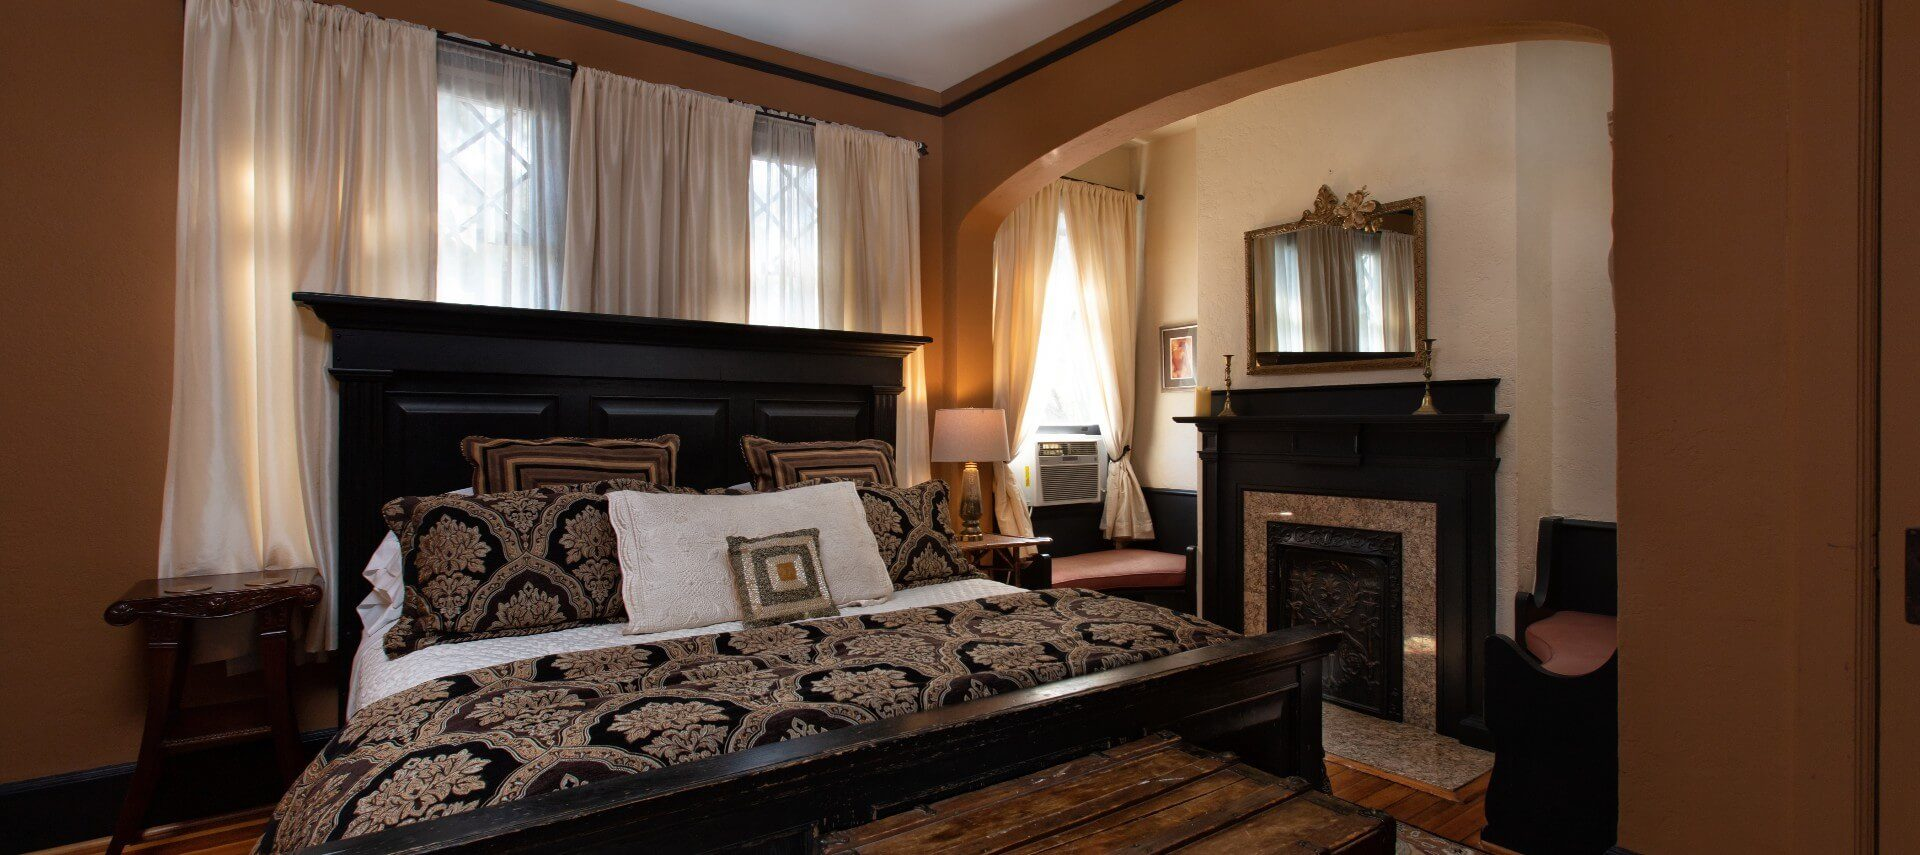 Elegant bedroom with black king size bed and fireplace with two sitting chairs through an arched doorway